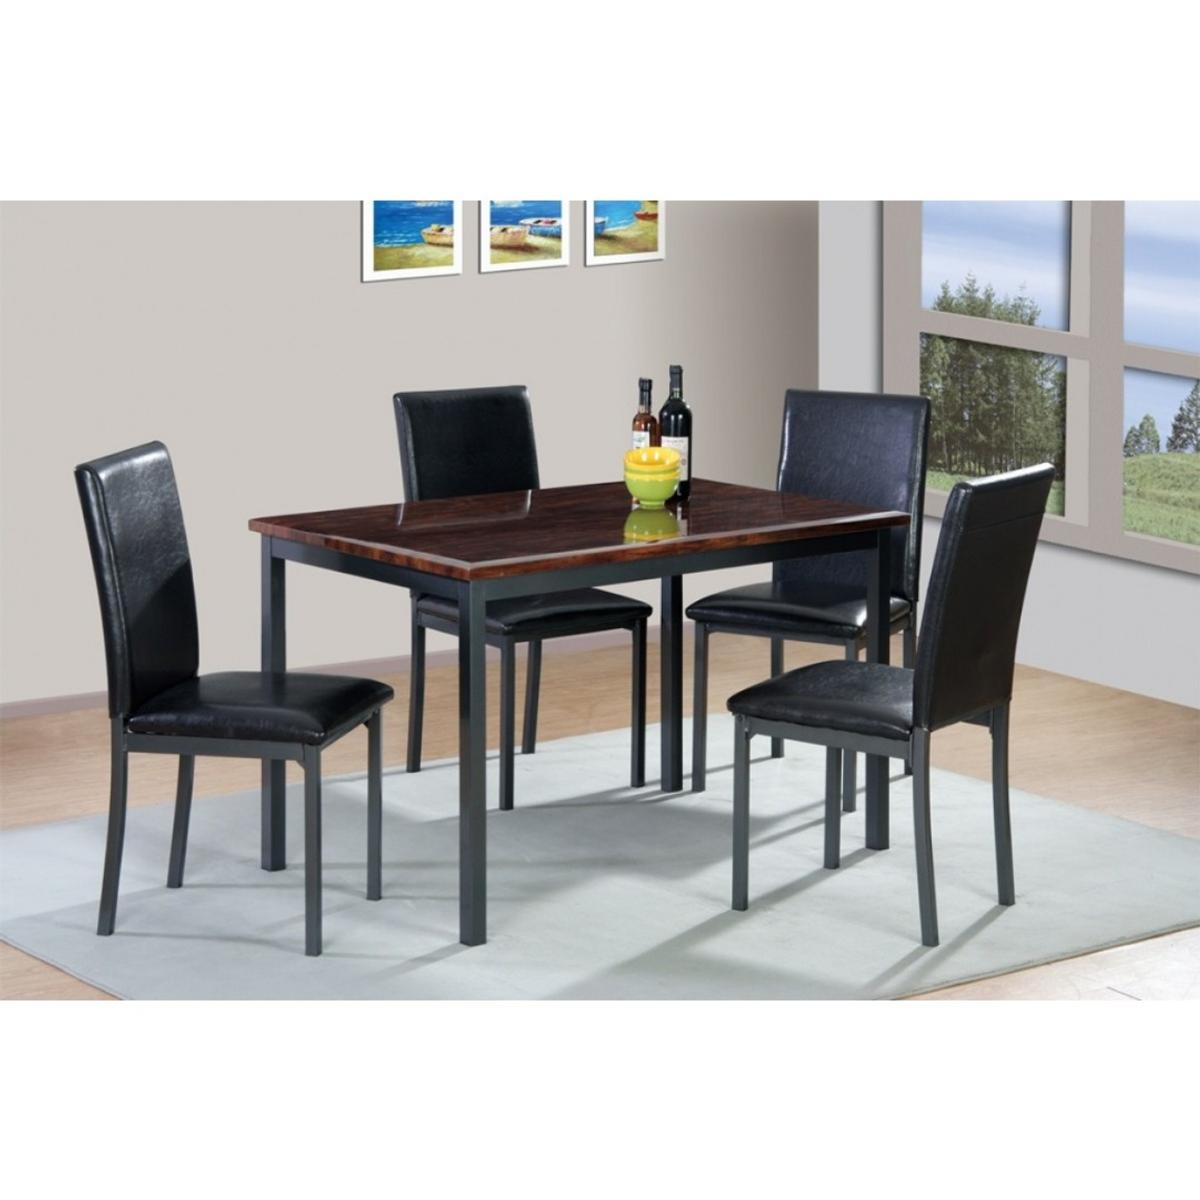 Sydney Dining Table With 4 Chairs In Lu4 Luton For 390 00